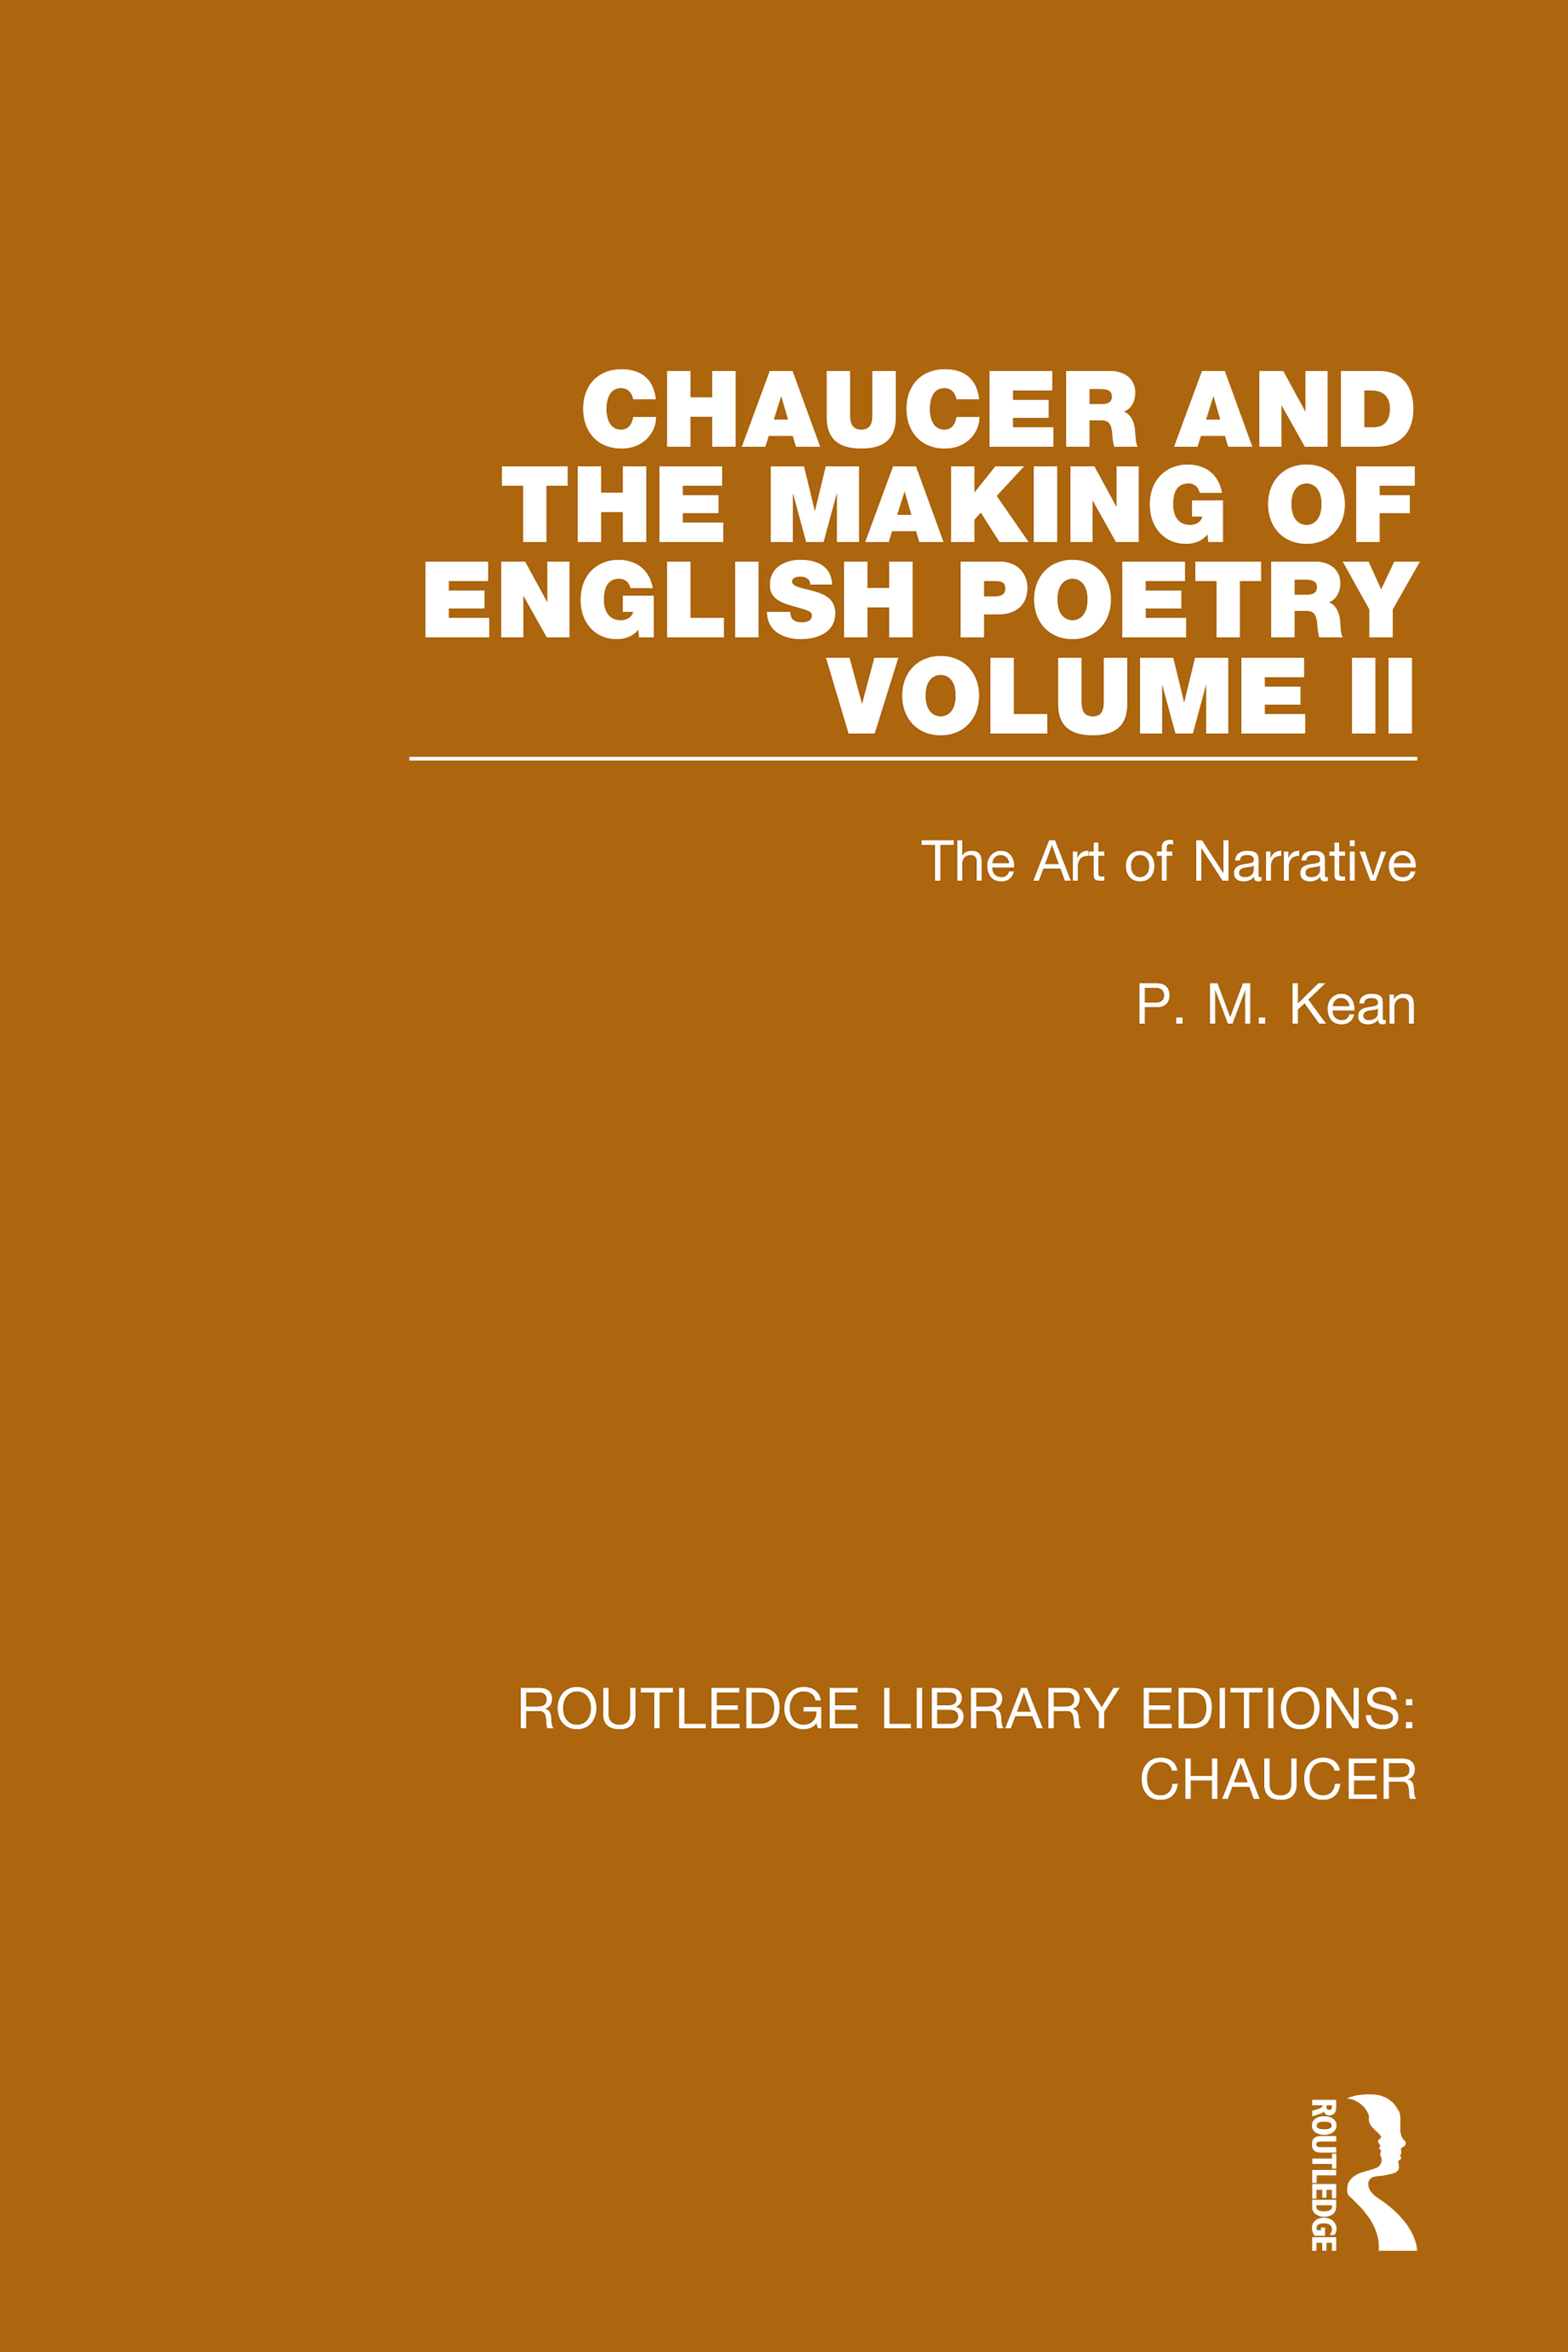 Chaucer and the Making of English Poetry, Volume 2